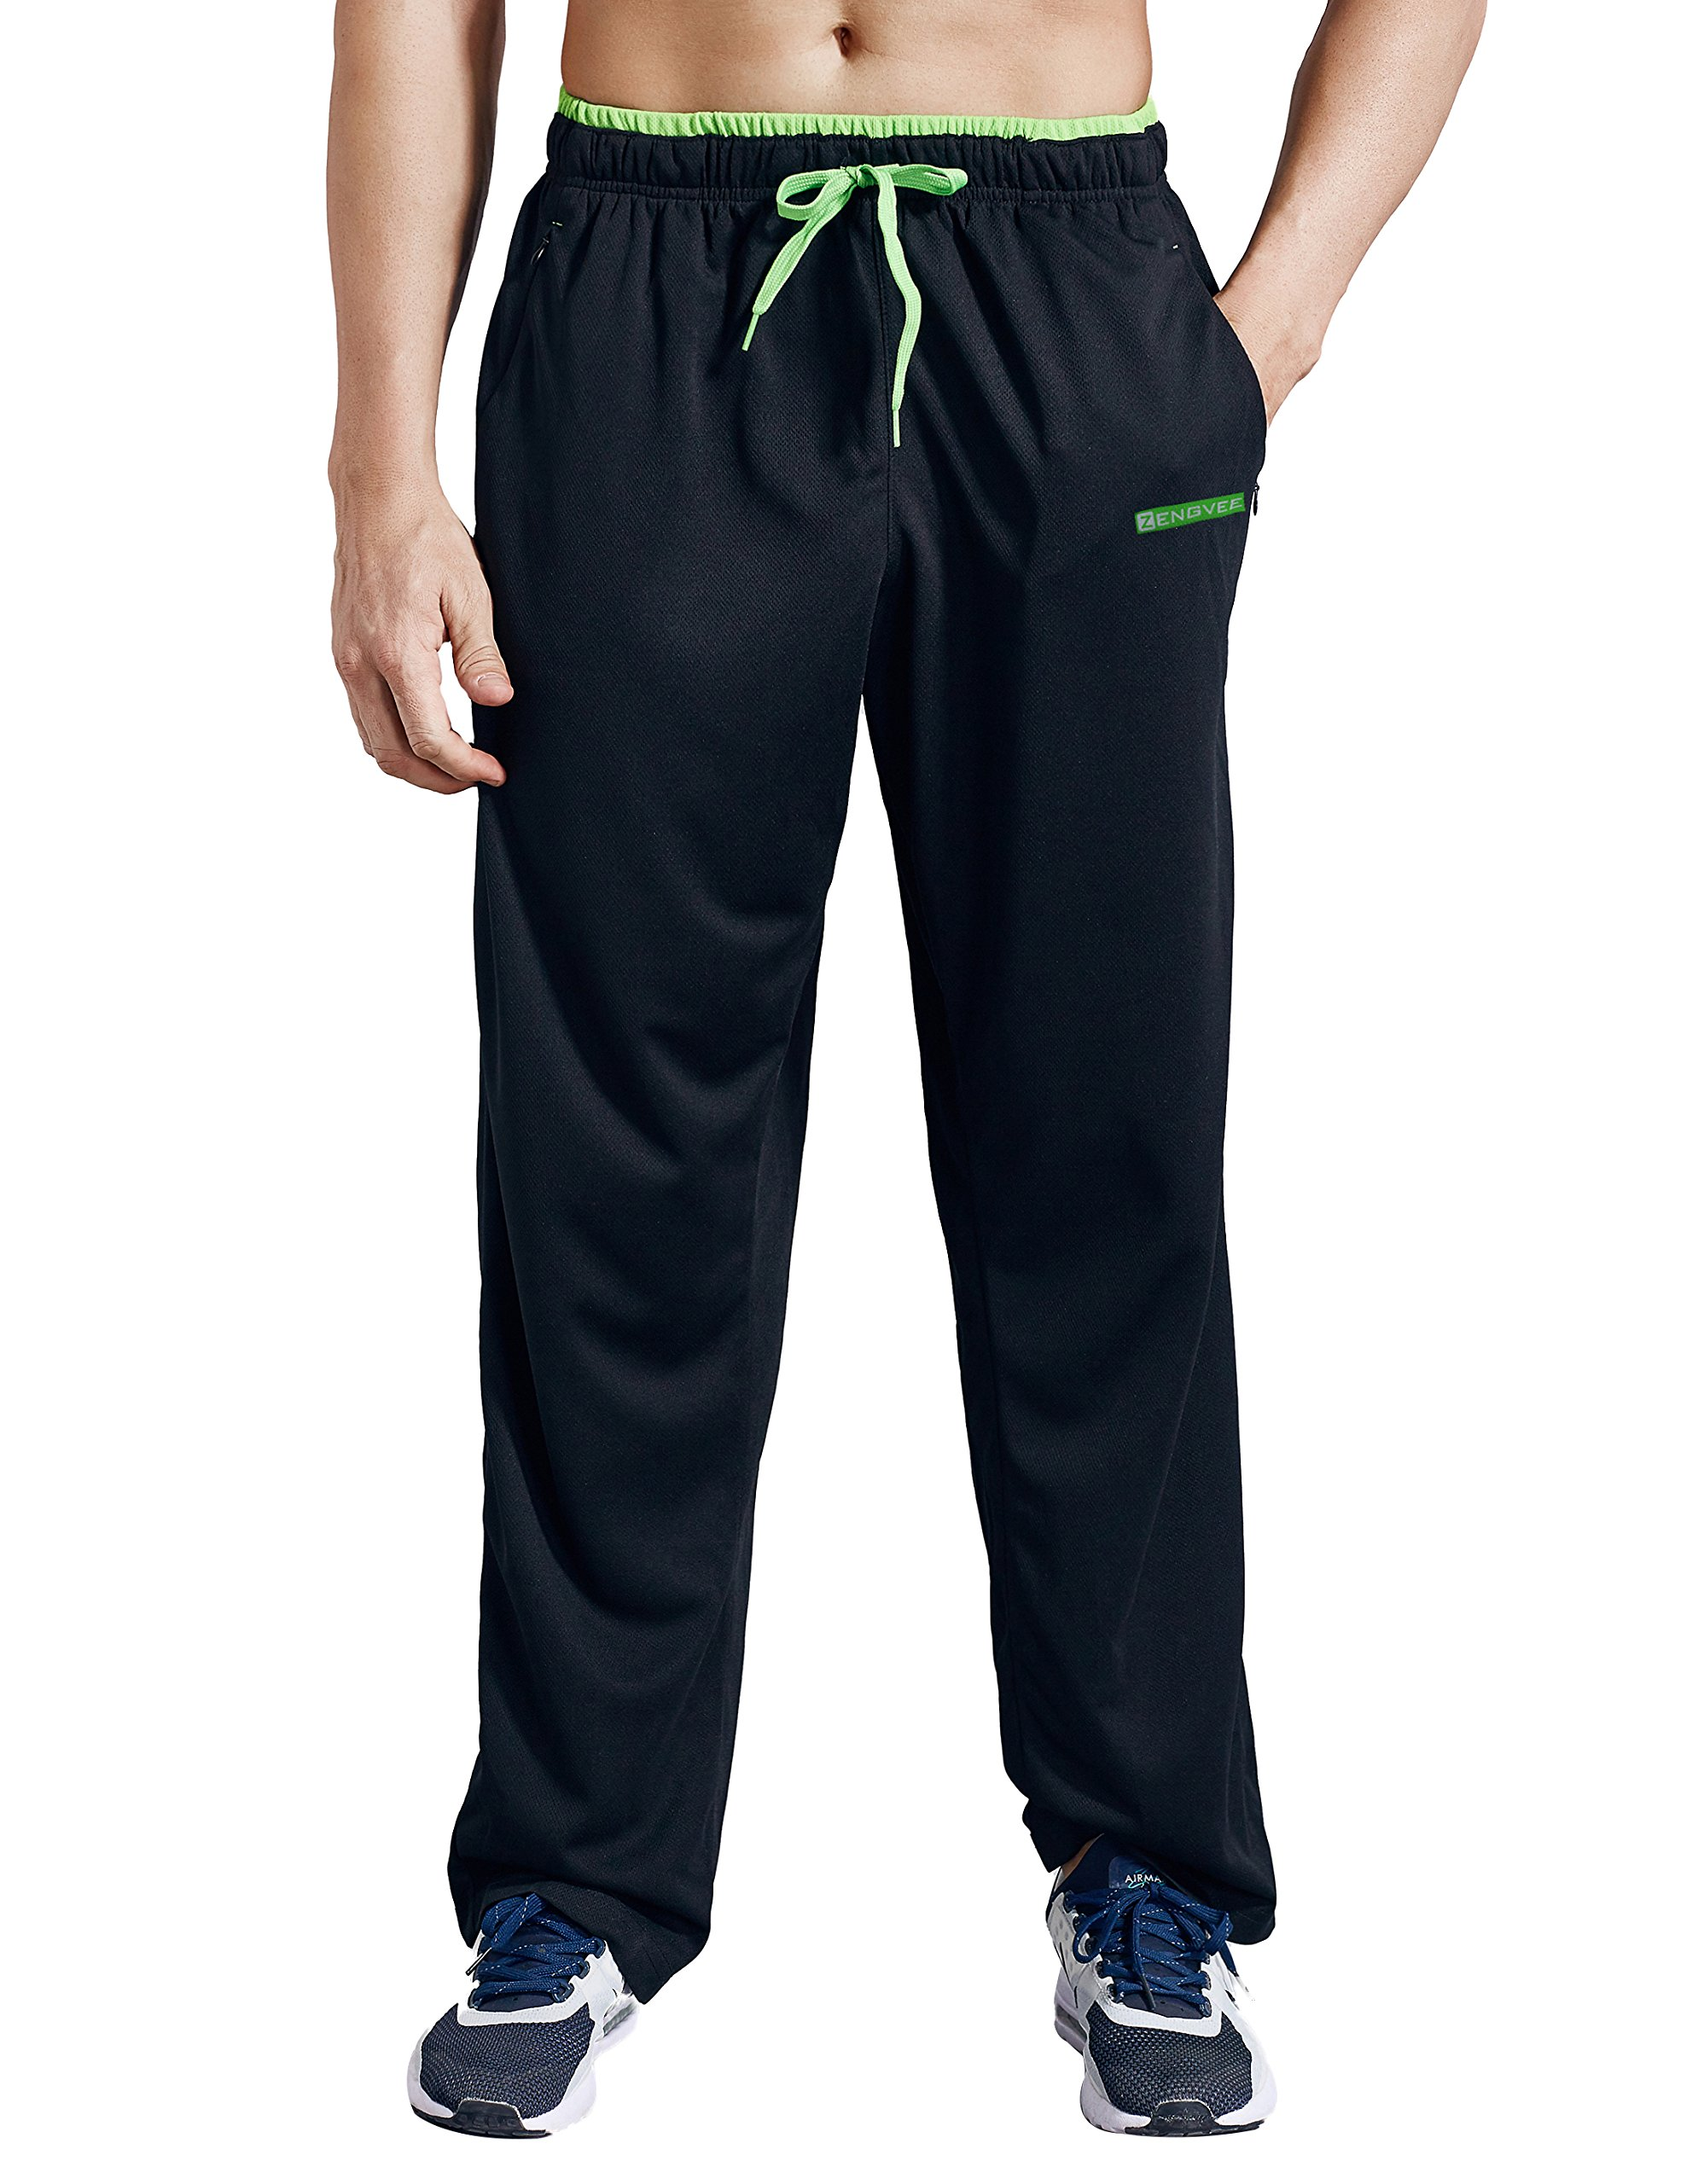 ZENGVEE Athletic Men's Open Bottom Light Weight Jersey Sweatpant with Zipper Pockets for Workout, Gym, Running, Training (Black01,S)